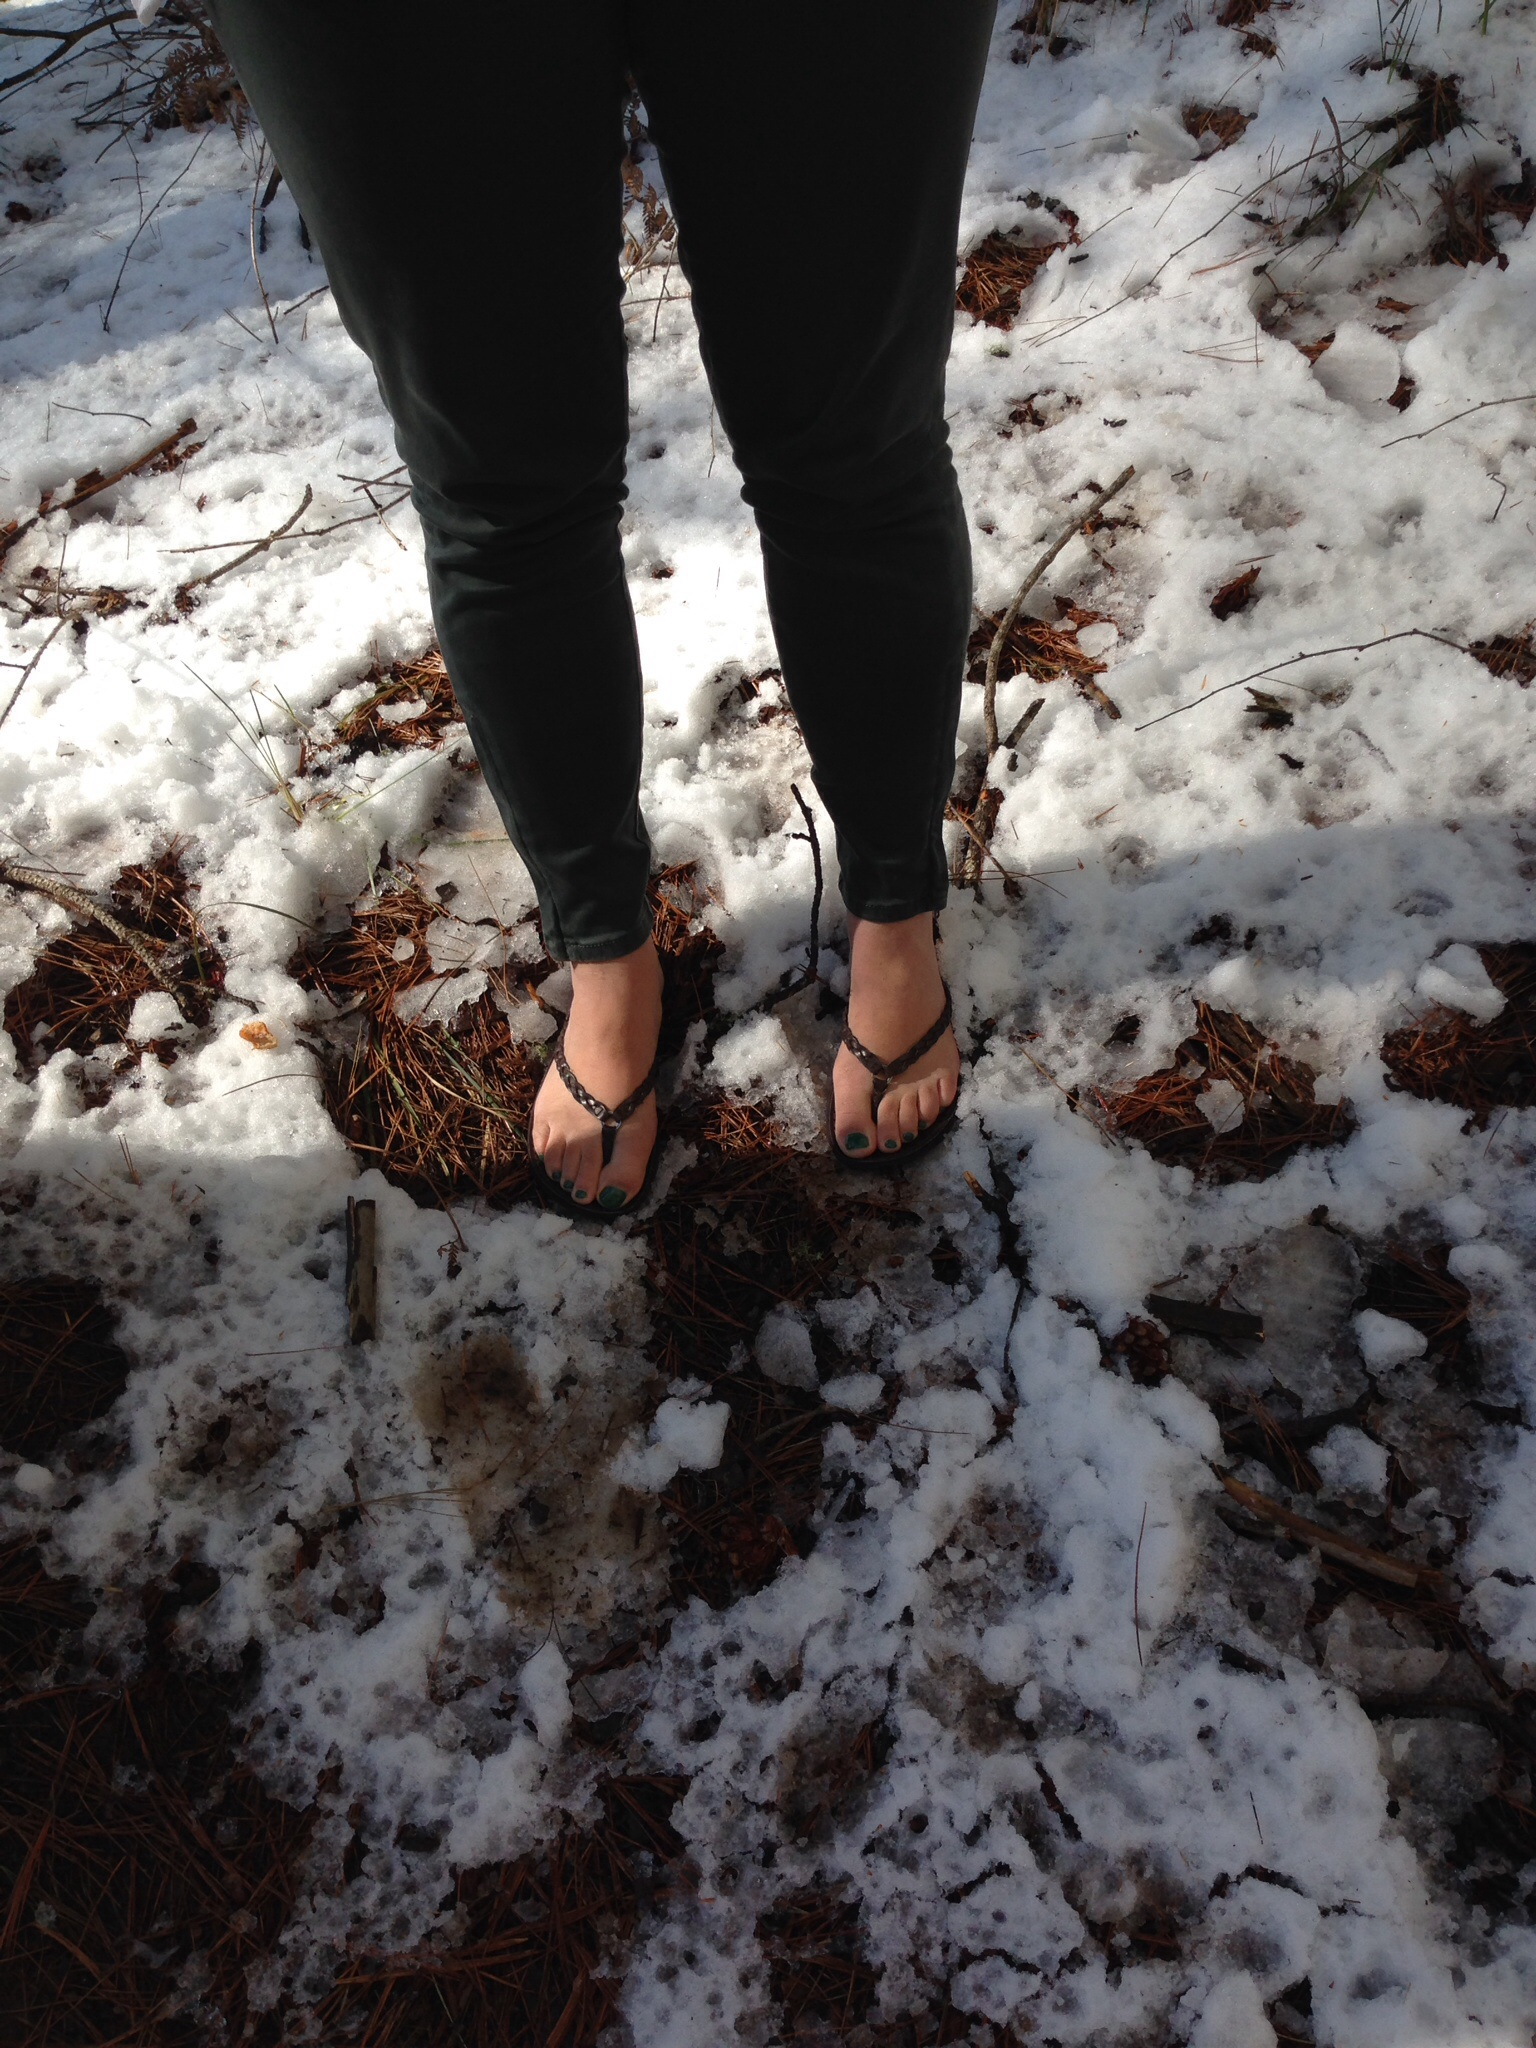 Sugar Pine walk in the snow with flip flops